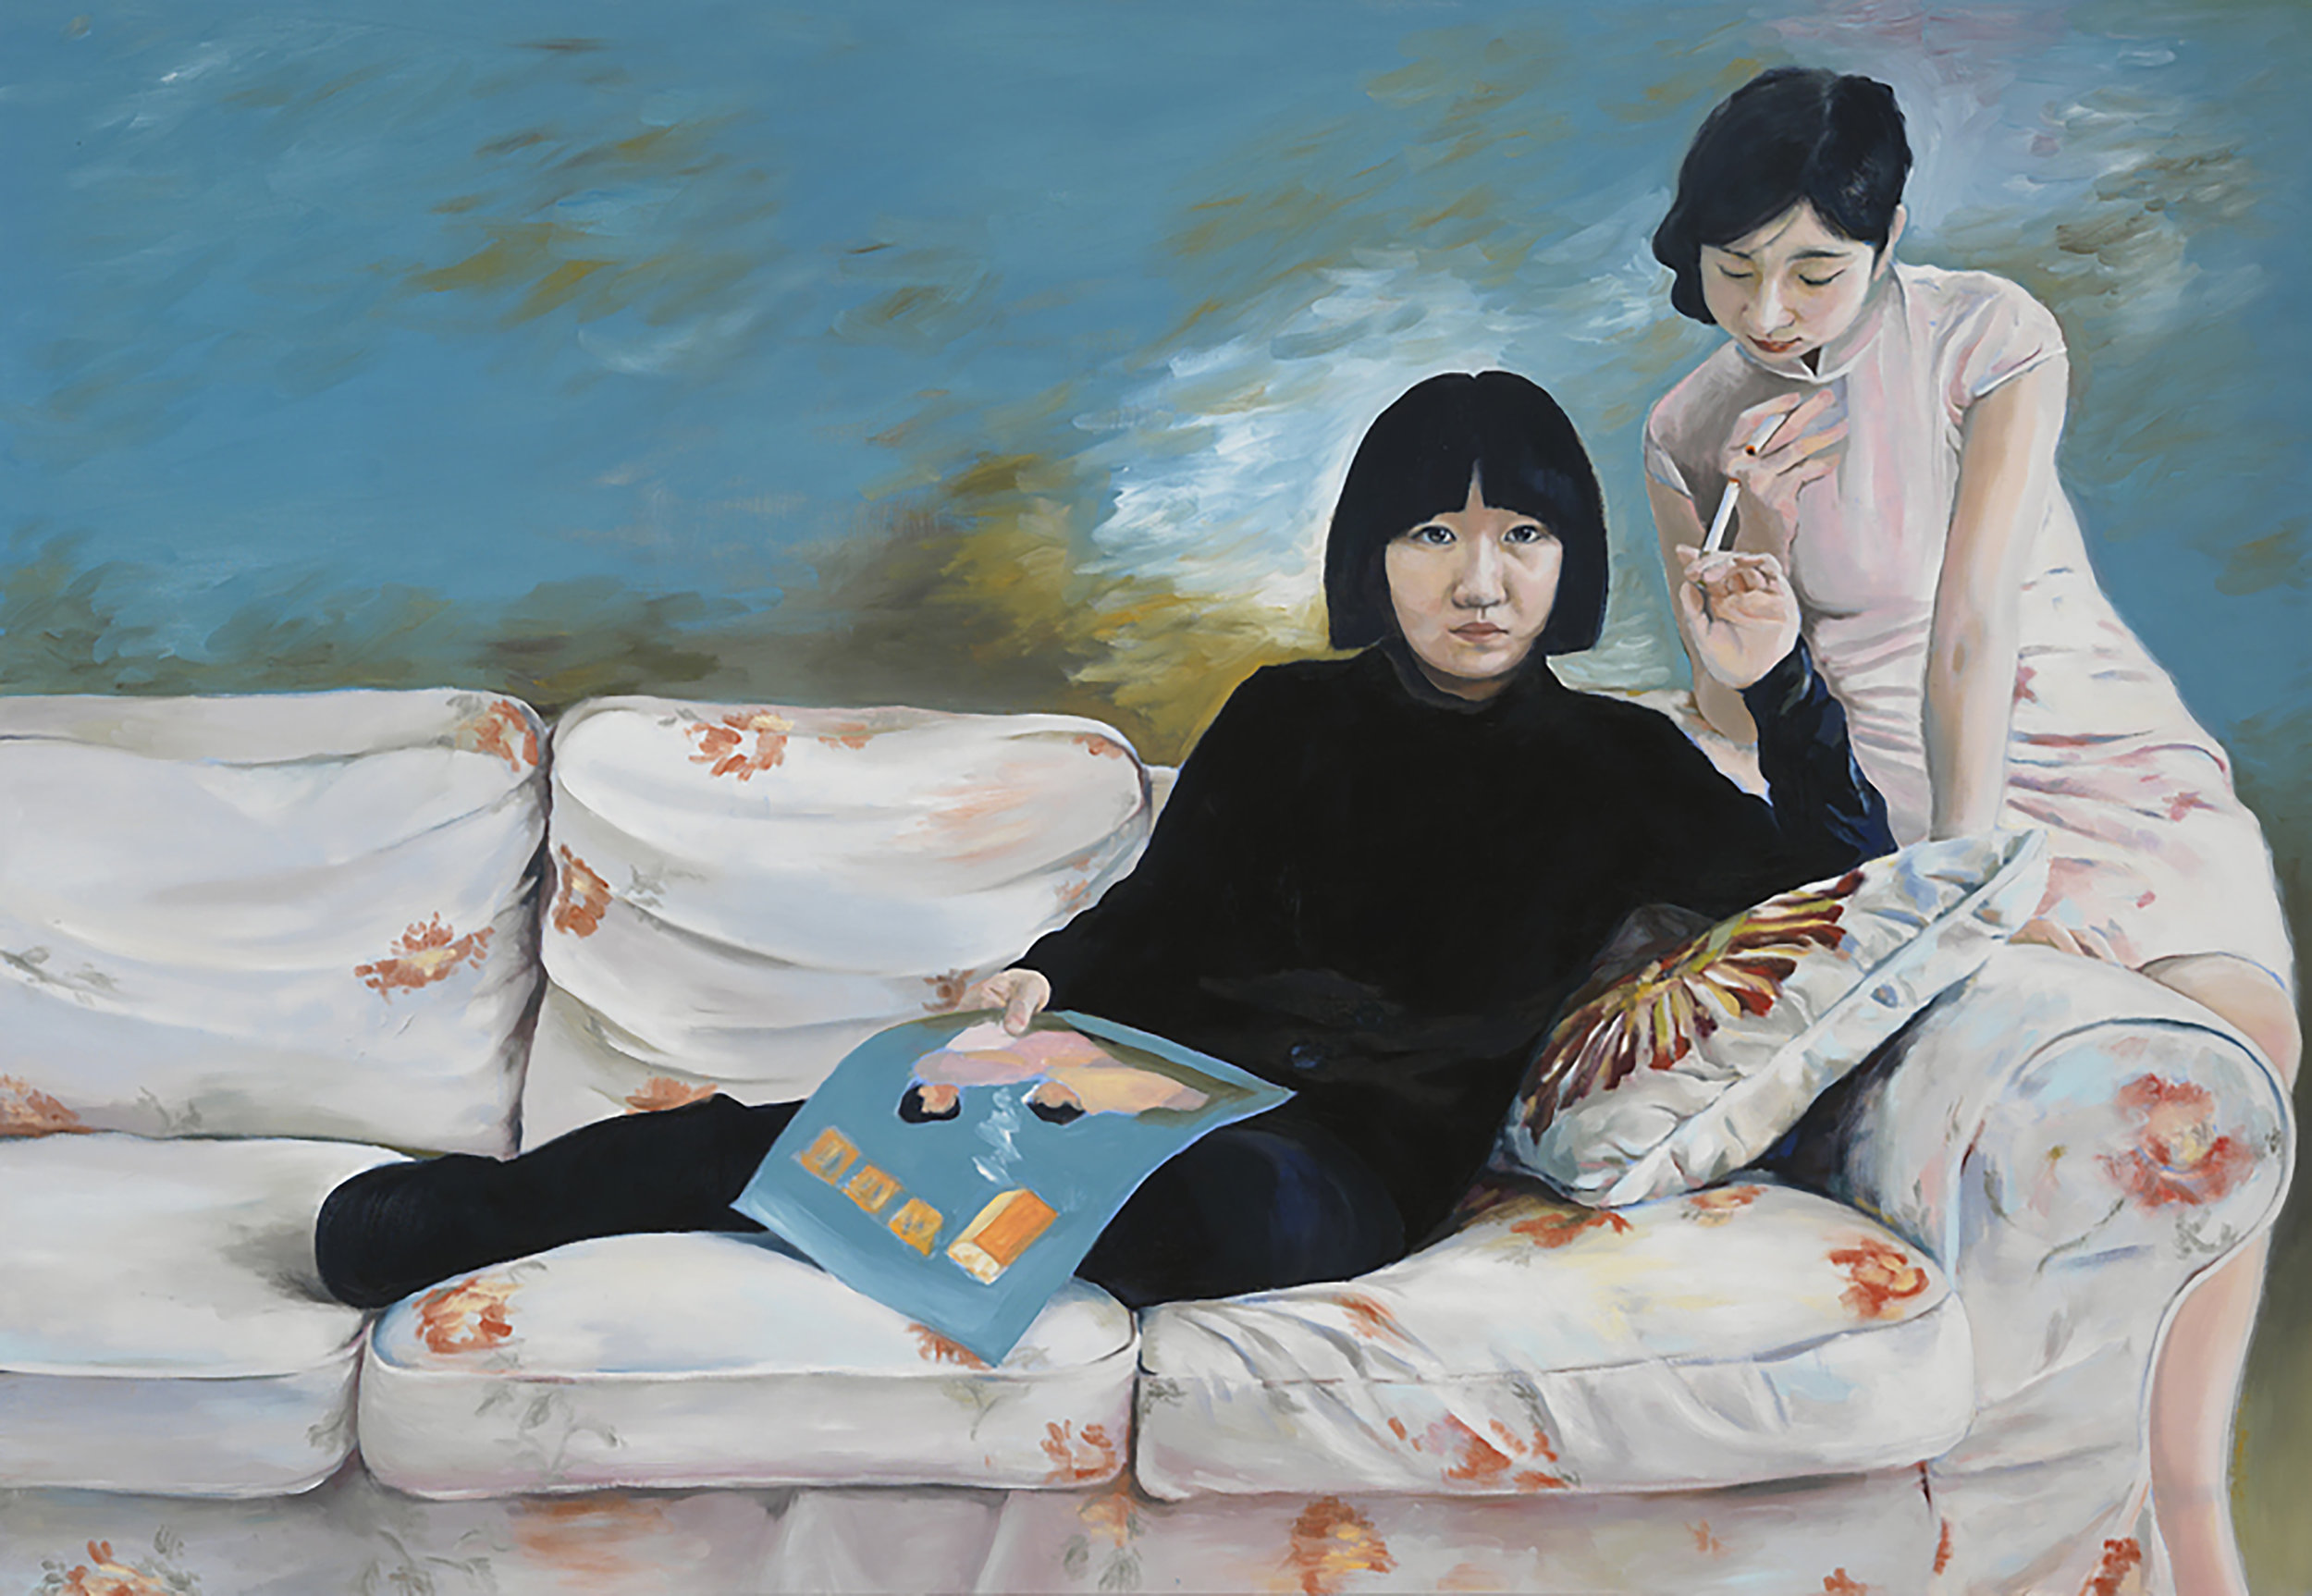 Qing_Song_Cigarette_Girls_III_Oil_on_Canvas_42x60.jpg